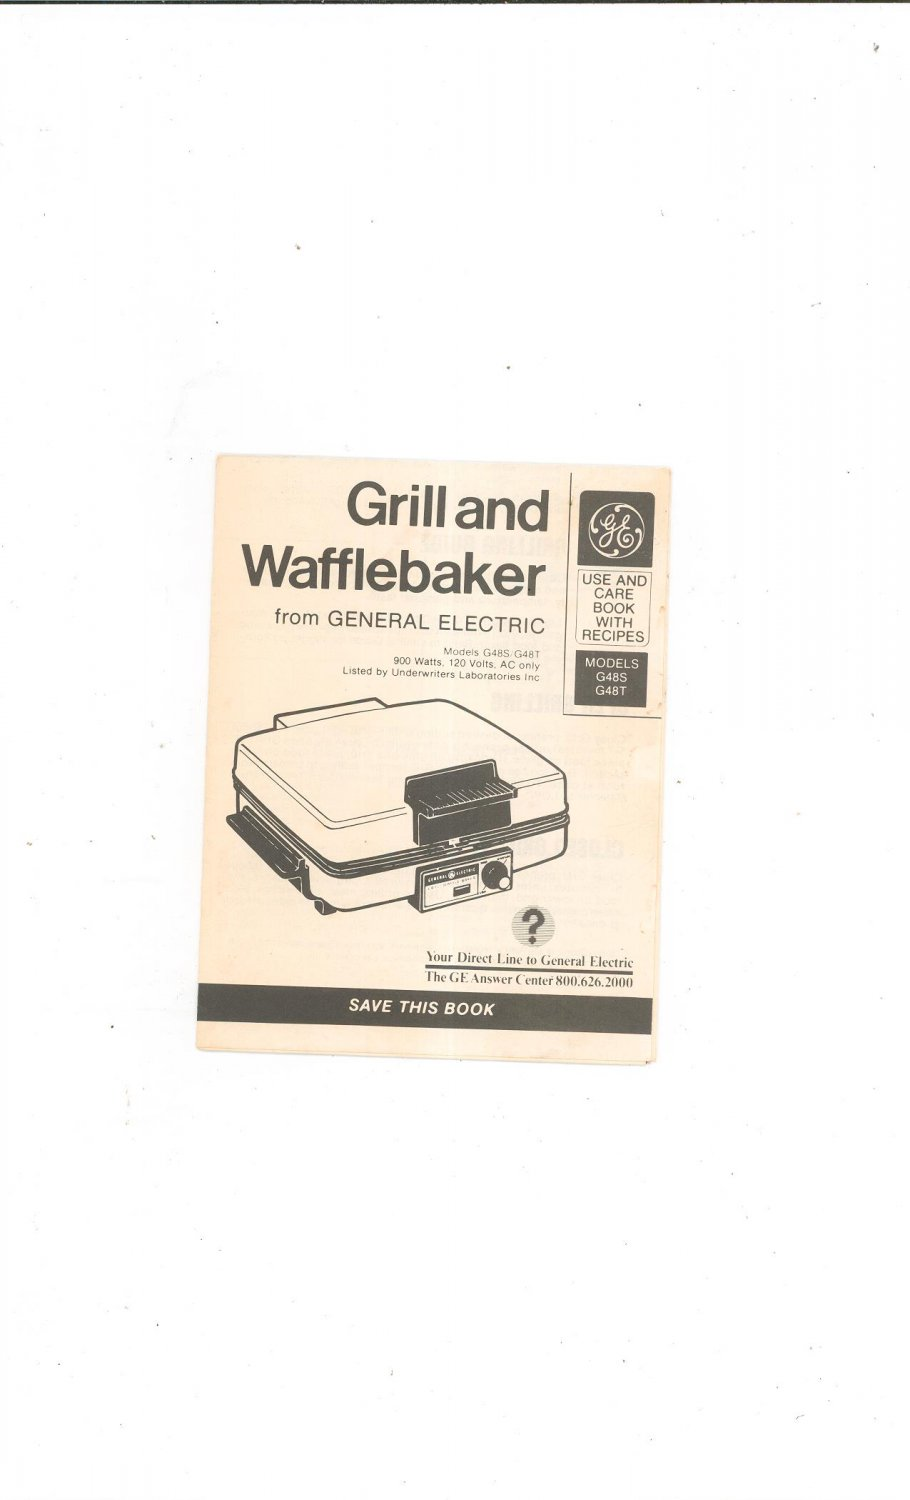 ge grill and wafflebaker model g48s g48t owners manual. Black Bedroom Furniture Sets. Home Design Ideas